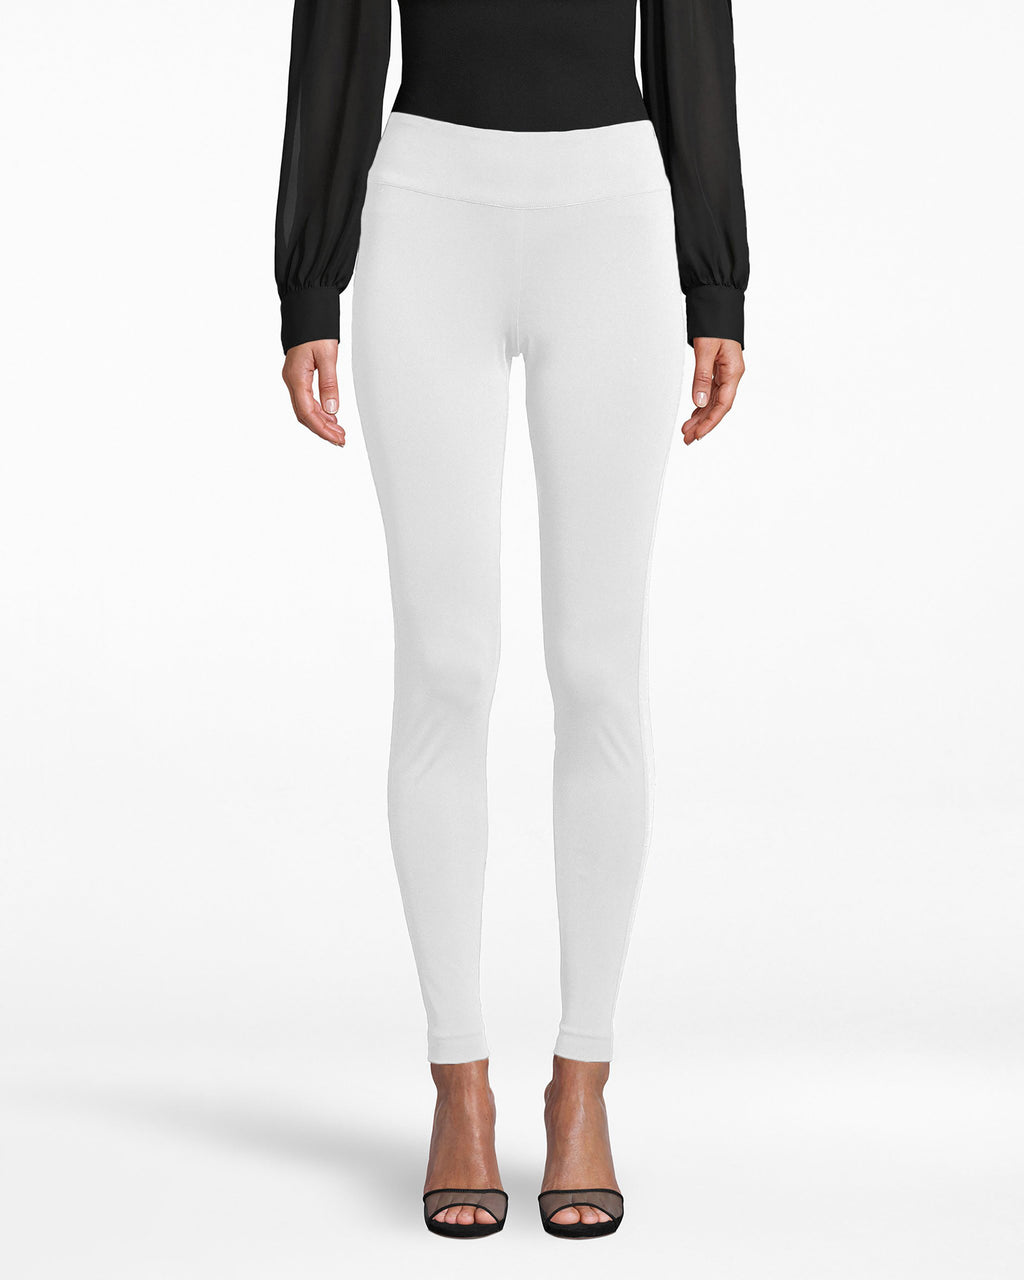 BG10348 - Nina Stetchy Tech Pants - bottoms - pants - OUR CLASSIC NINA PANTS ARE A CLOSET ESSENTIAL. THEY'RE FORM FITTING, COMFORTABLE AND GO WITH JUST ABOUT EVERYTHING. Add 1 line break STYLIST TIP: WEAR WITH YOURFAVORITE SHOES - SNEAKERS, HEELS OR BOOTS.